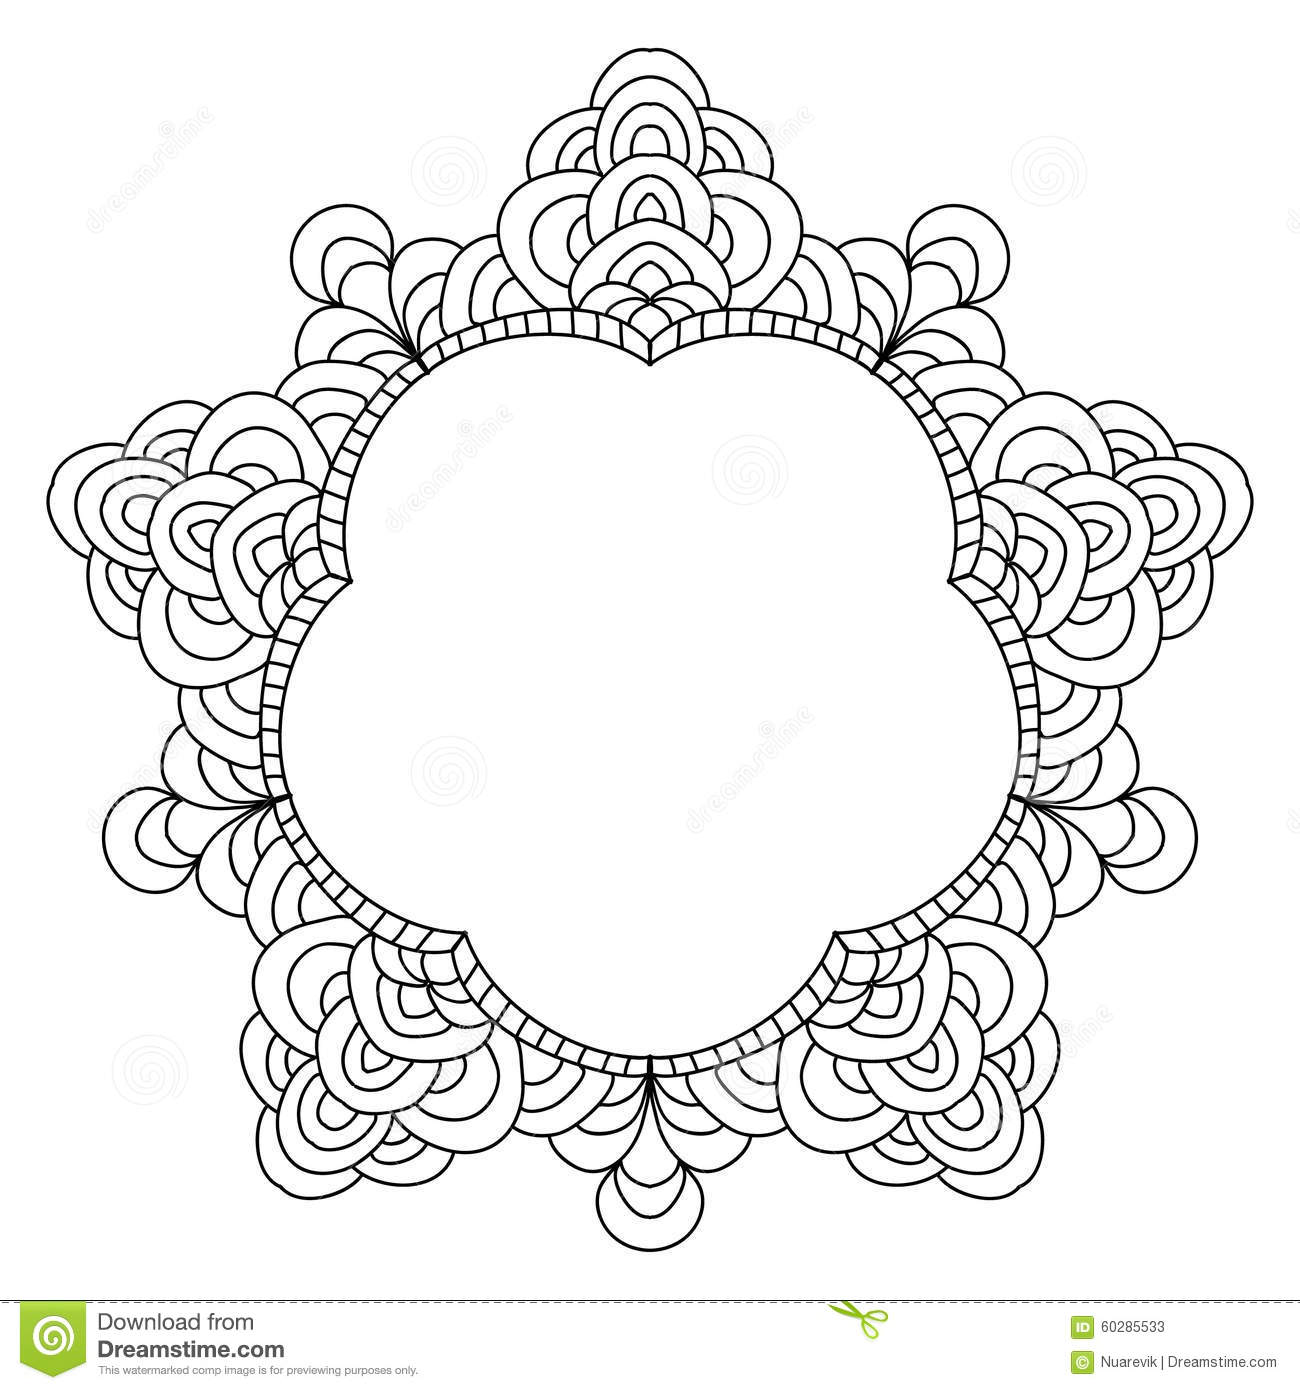 Stock Illustration Abstract Mandala Frame Mehndi Elements Image60285533 as well Revidevi Free Cupcake Coloring Page as well Pintar Colorir Mandalas 044 additionally Best Geometric Coloring Pages To Print 904 in addition Lineart. on free mandalas to print